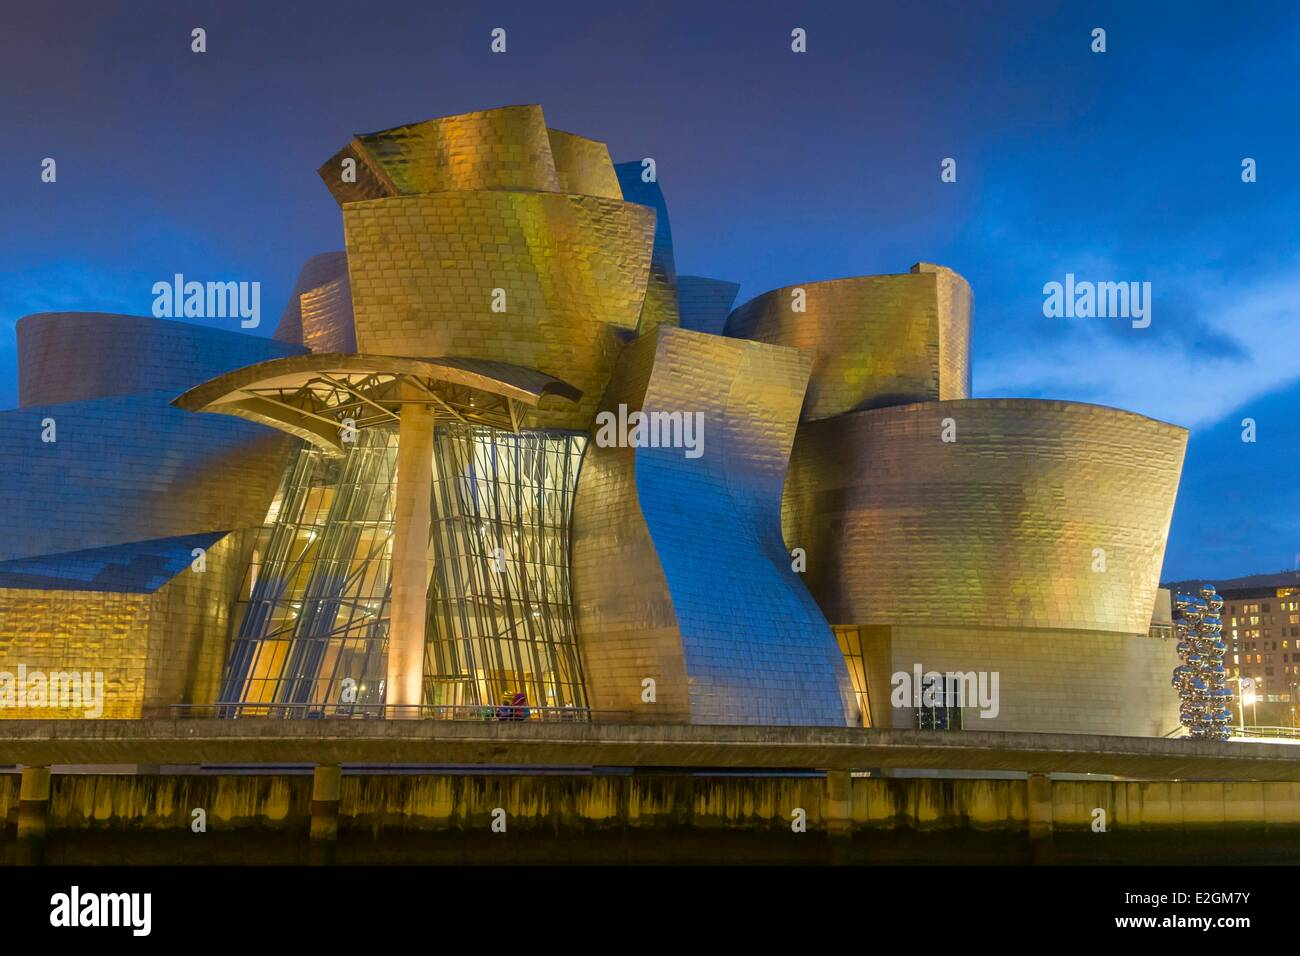 Spain Basque Country Region Vizcaya Province Bilbao Guggenheim Museum designed by Frank Gehry - Stock Image